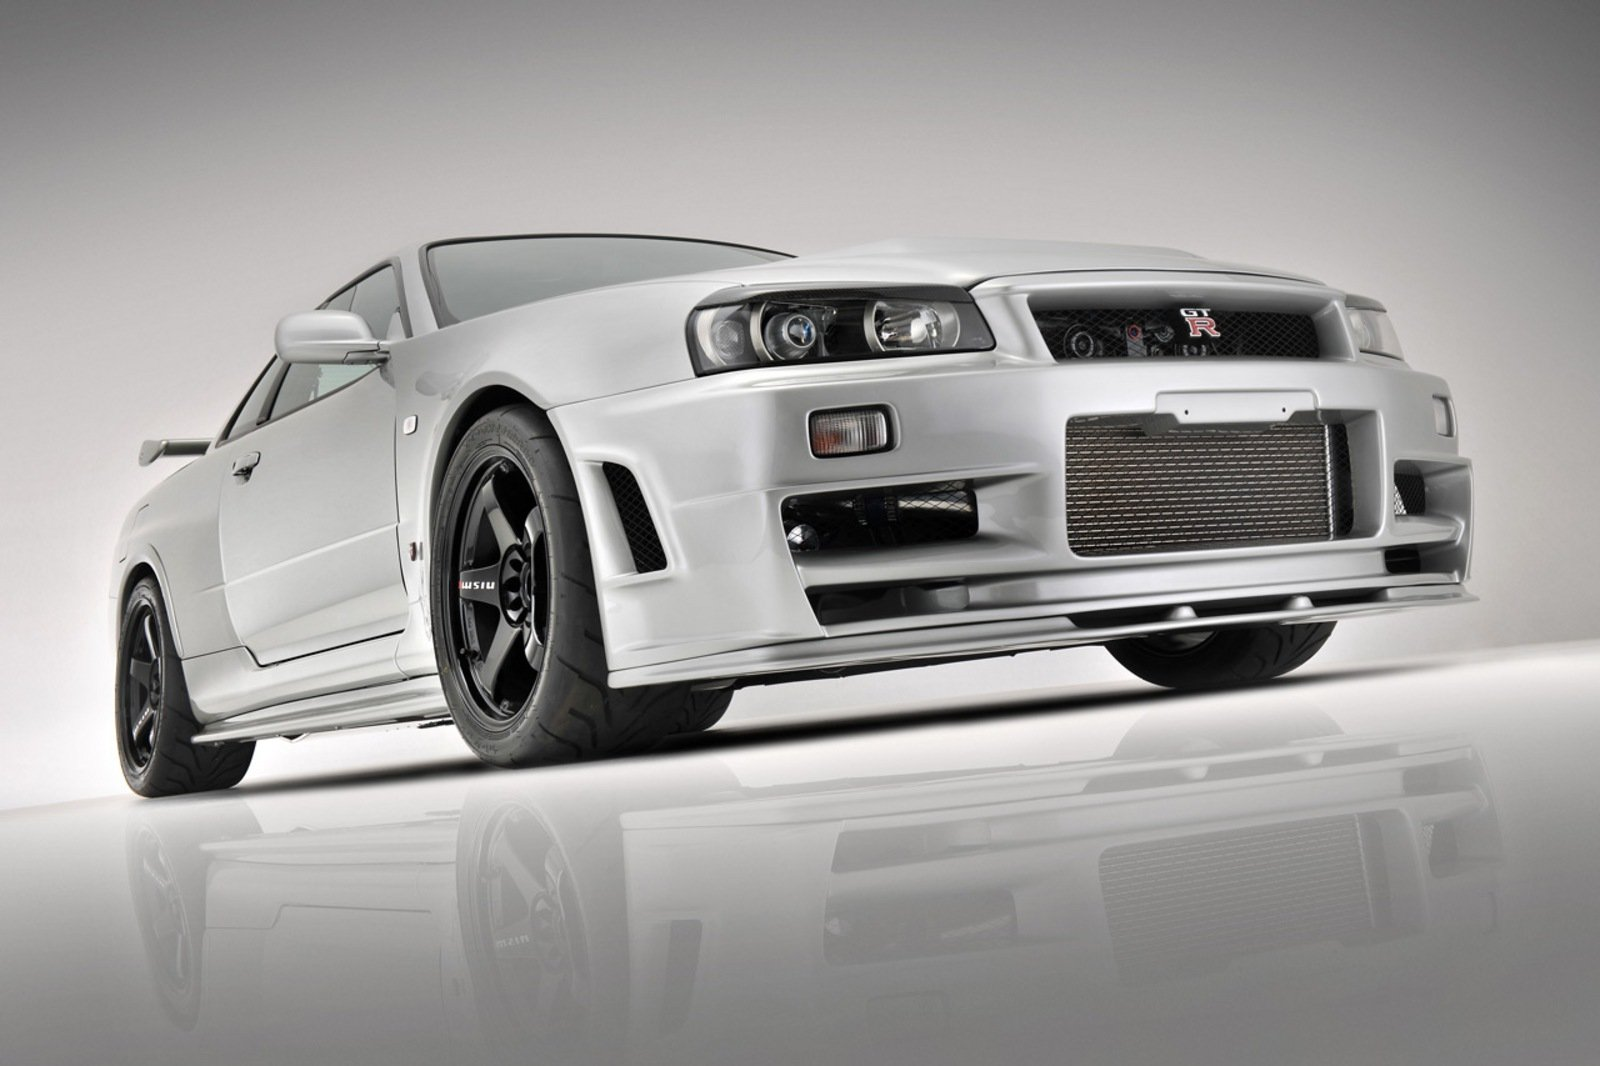 nissan skyline r34 gt r by japo motorsport gmbh review top speed. Black Bedroom Furniture Sets. Home Design Ideas